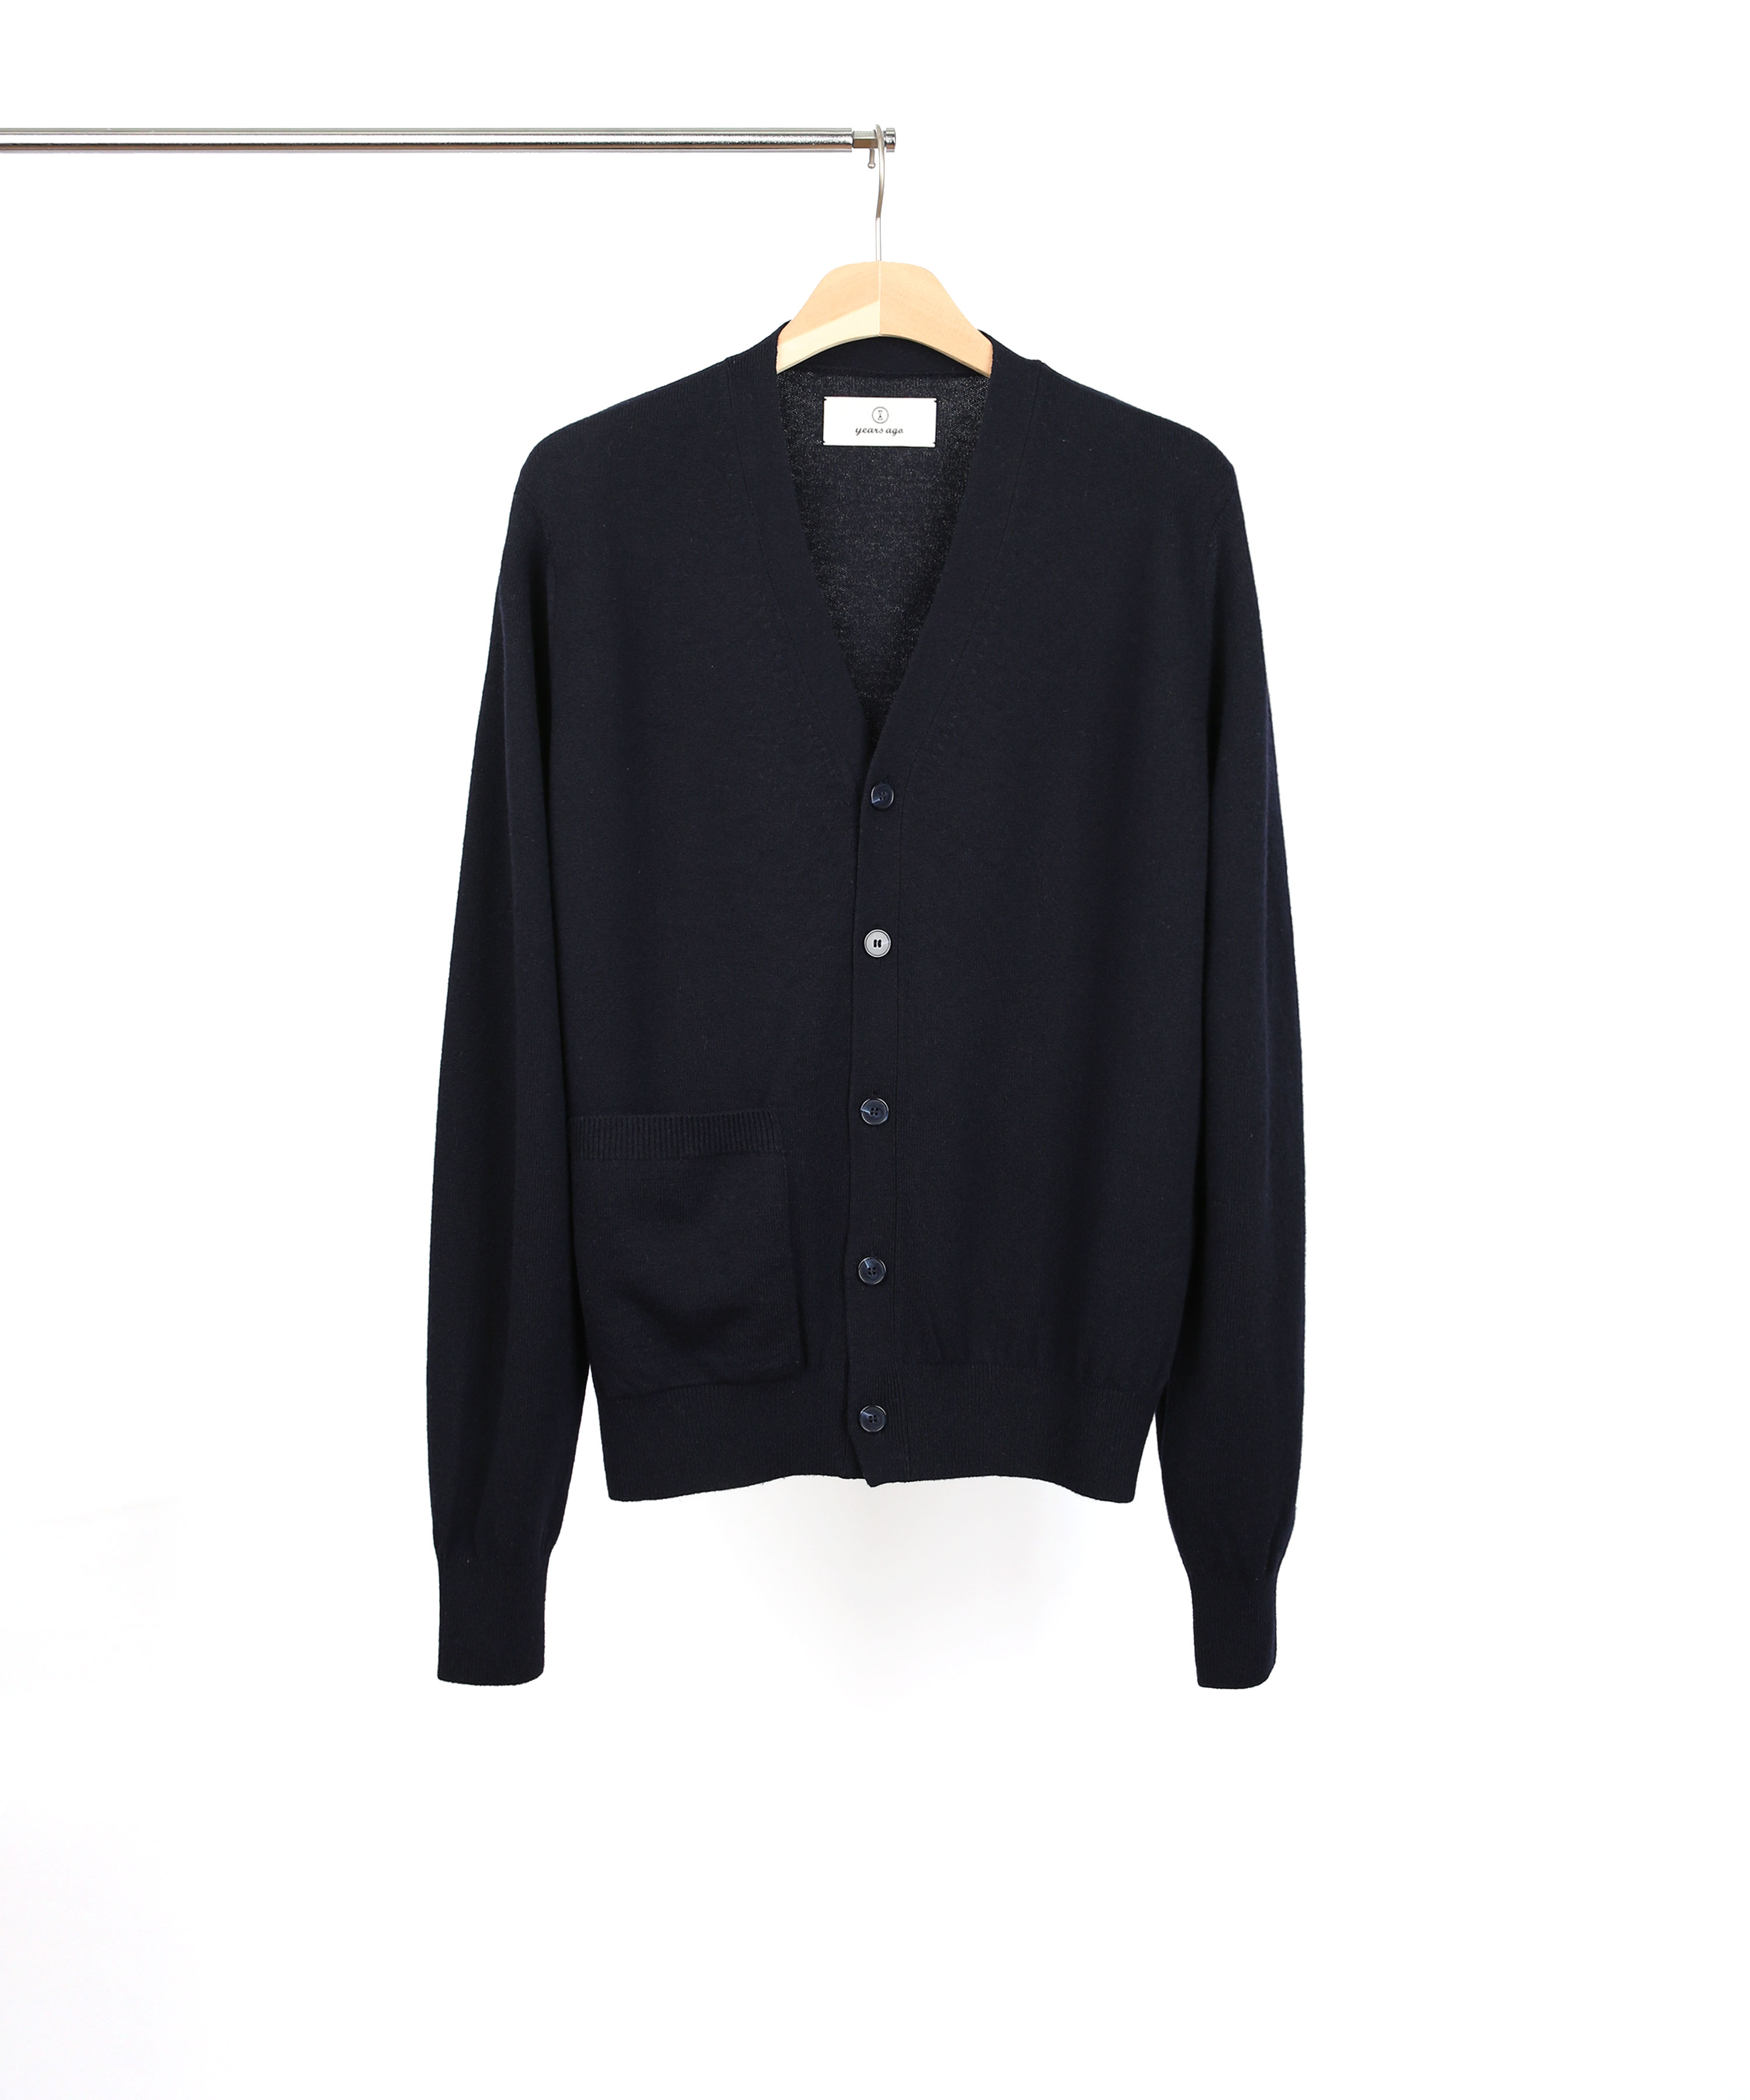 [RESTOCK] DARK NAVY ROVER WOOL CARDIGAN 02 (4월 29일 순차발송)